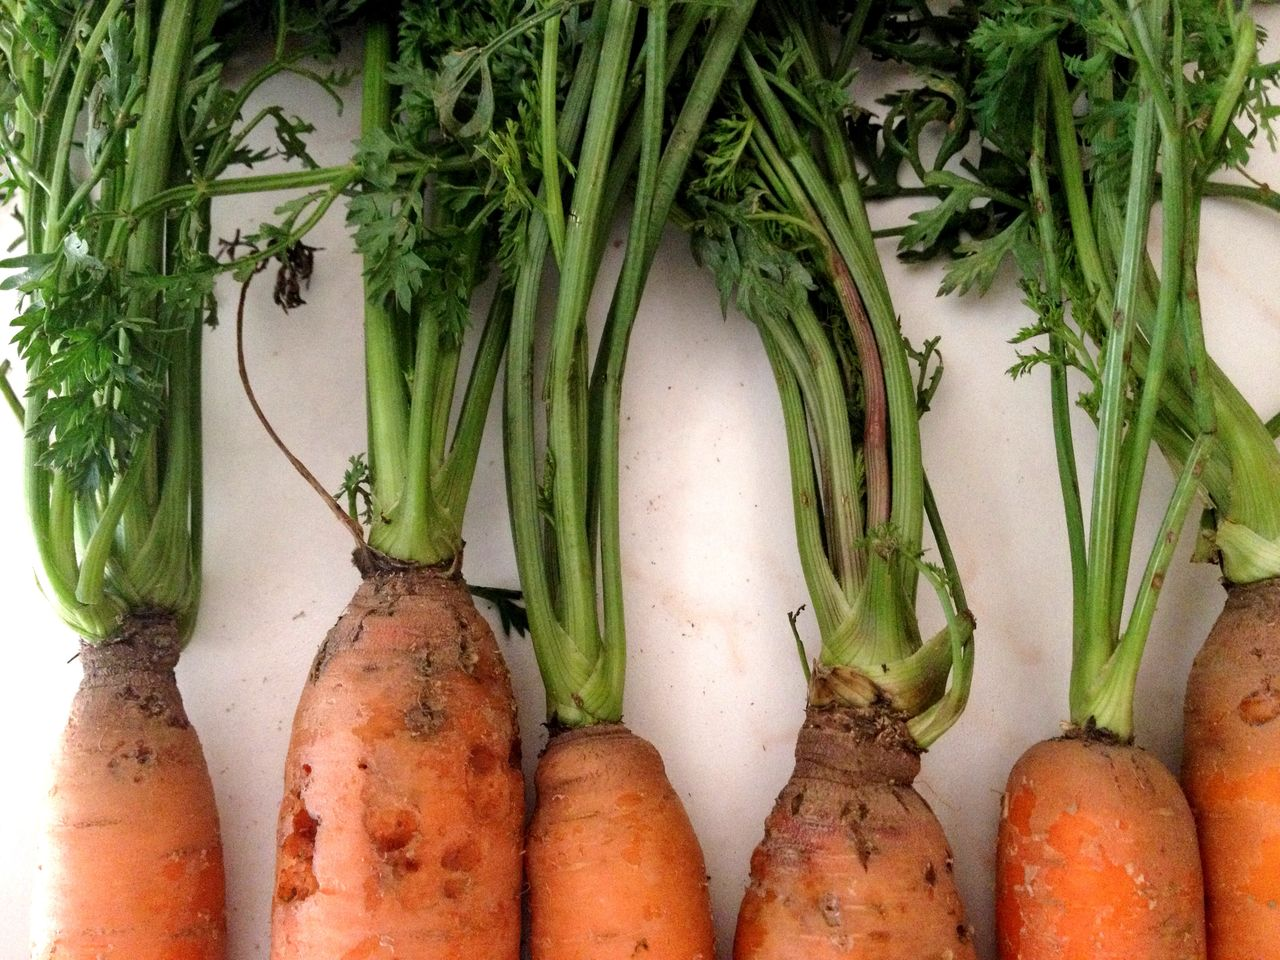 healthy eating, food and drink, wellbeing, food, vegetable, freshness, root vegetable, green color, still life, no people, raw food, carrot, organic, close-up, indoors, large group of objects, for sale, high angle view, market, day, vegetarian food